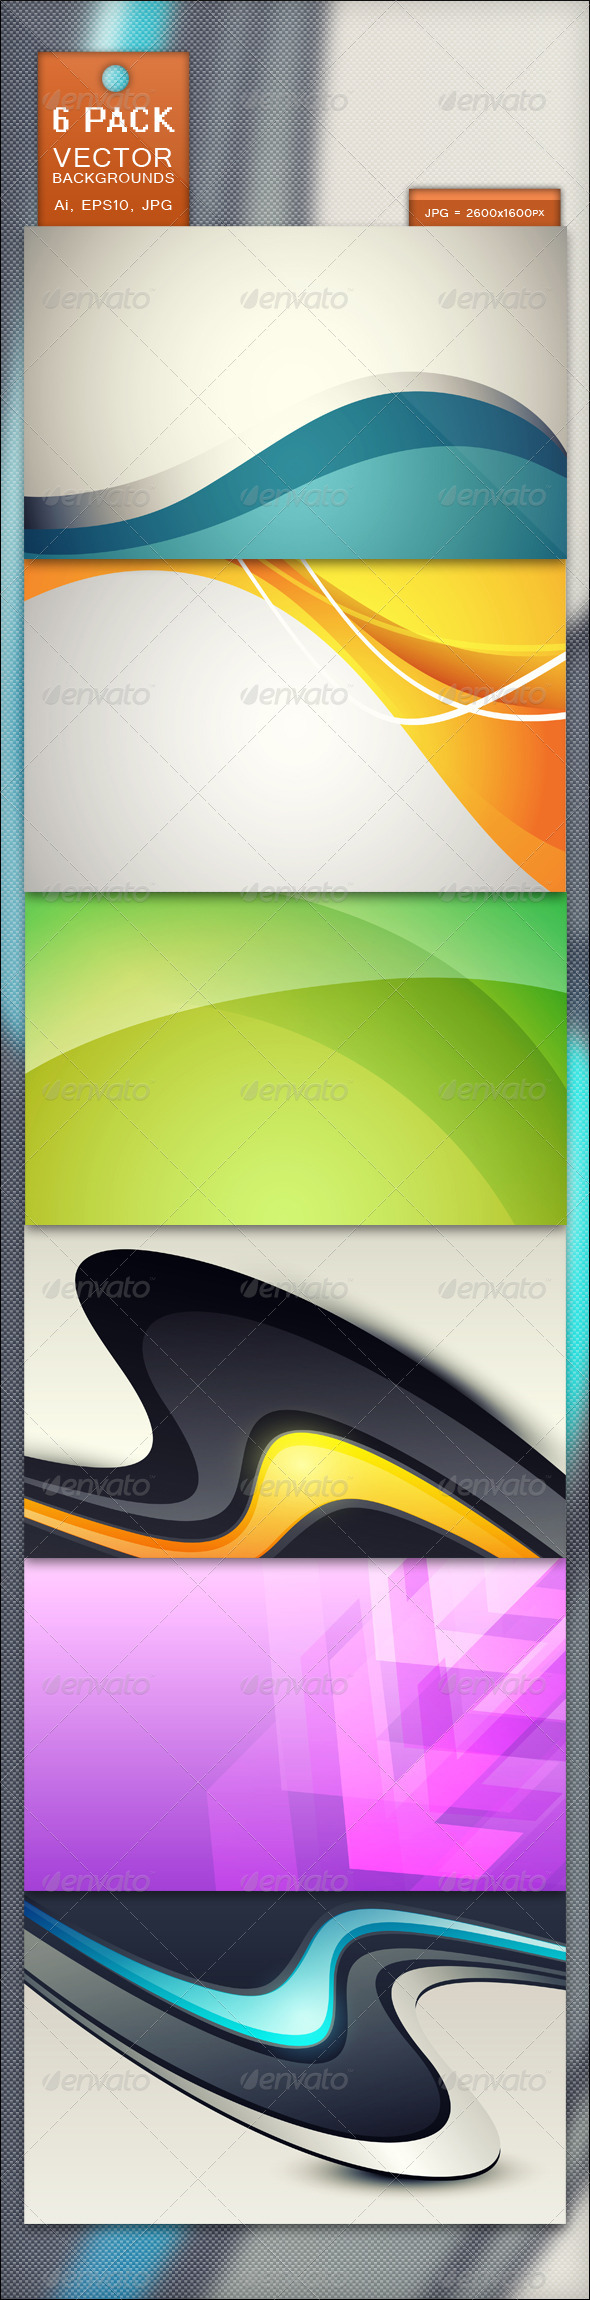 GraphicRiver 6 Pack Vector Backgrounds 2672089